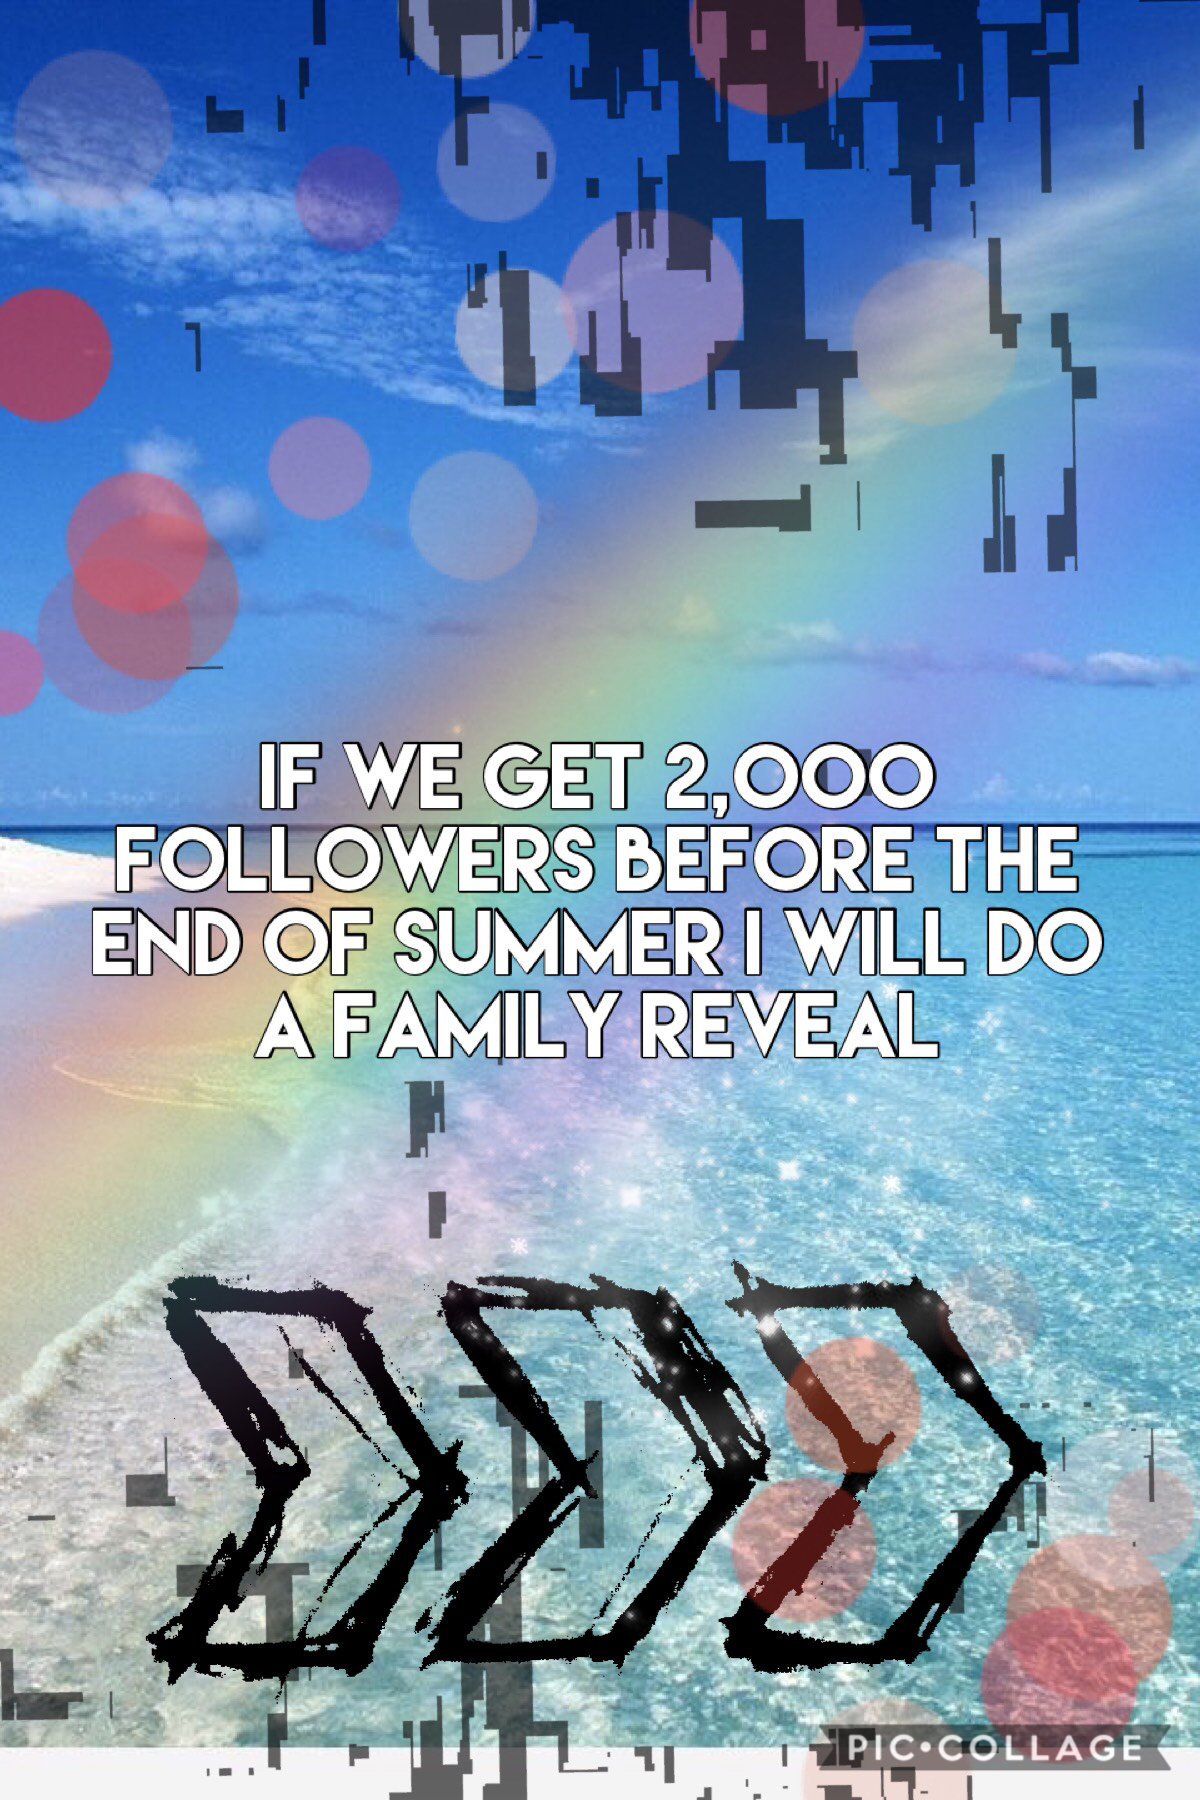 I will do a family reveal if we get to 2,000 followers